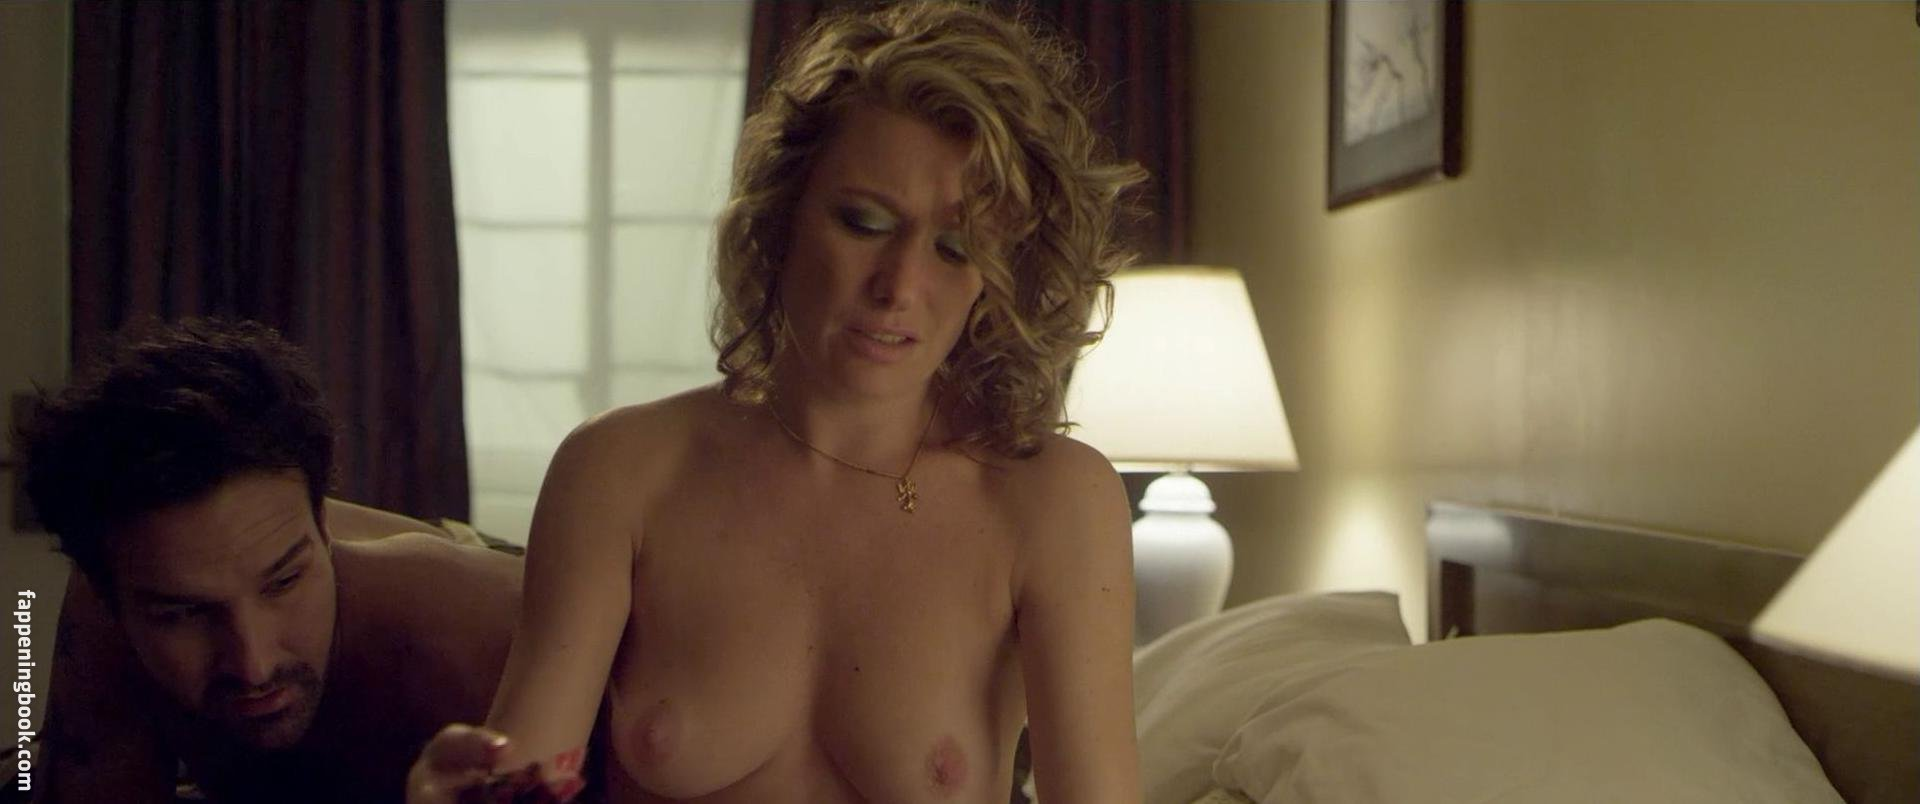 Nata Lee Nude, Sexy, The Fappening, Uncensored